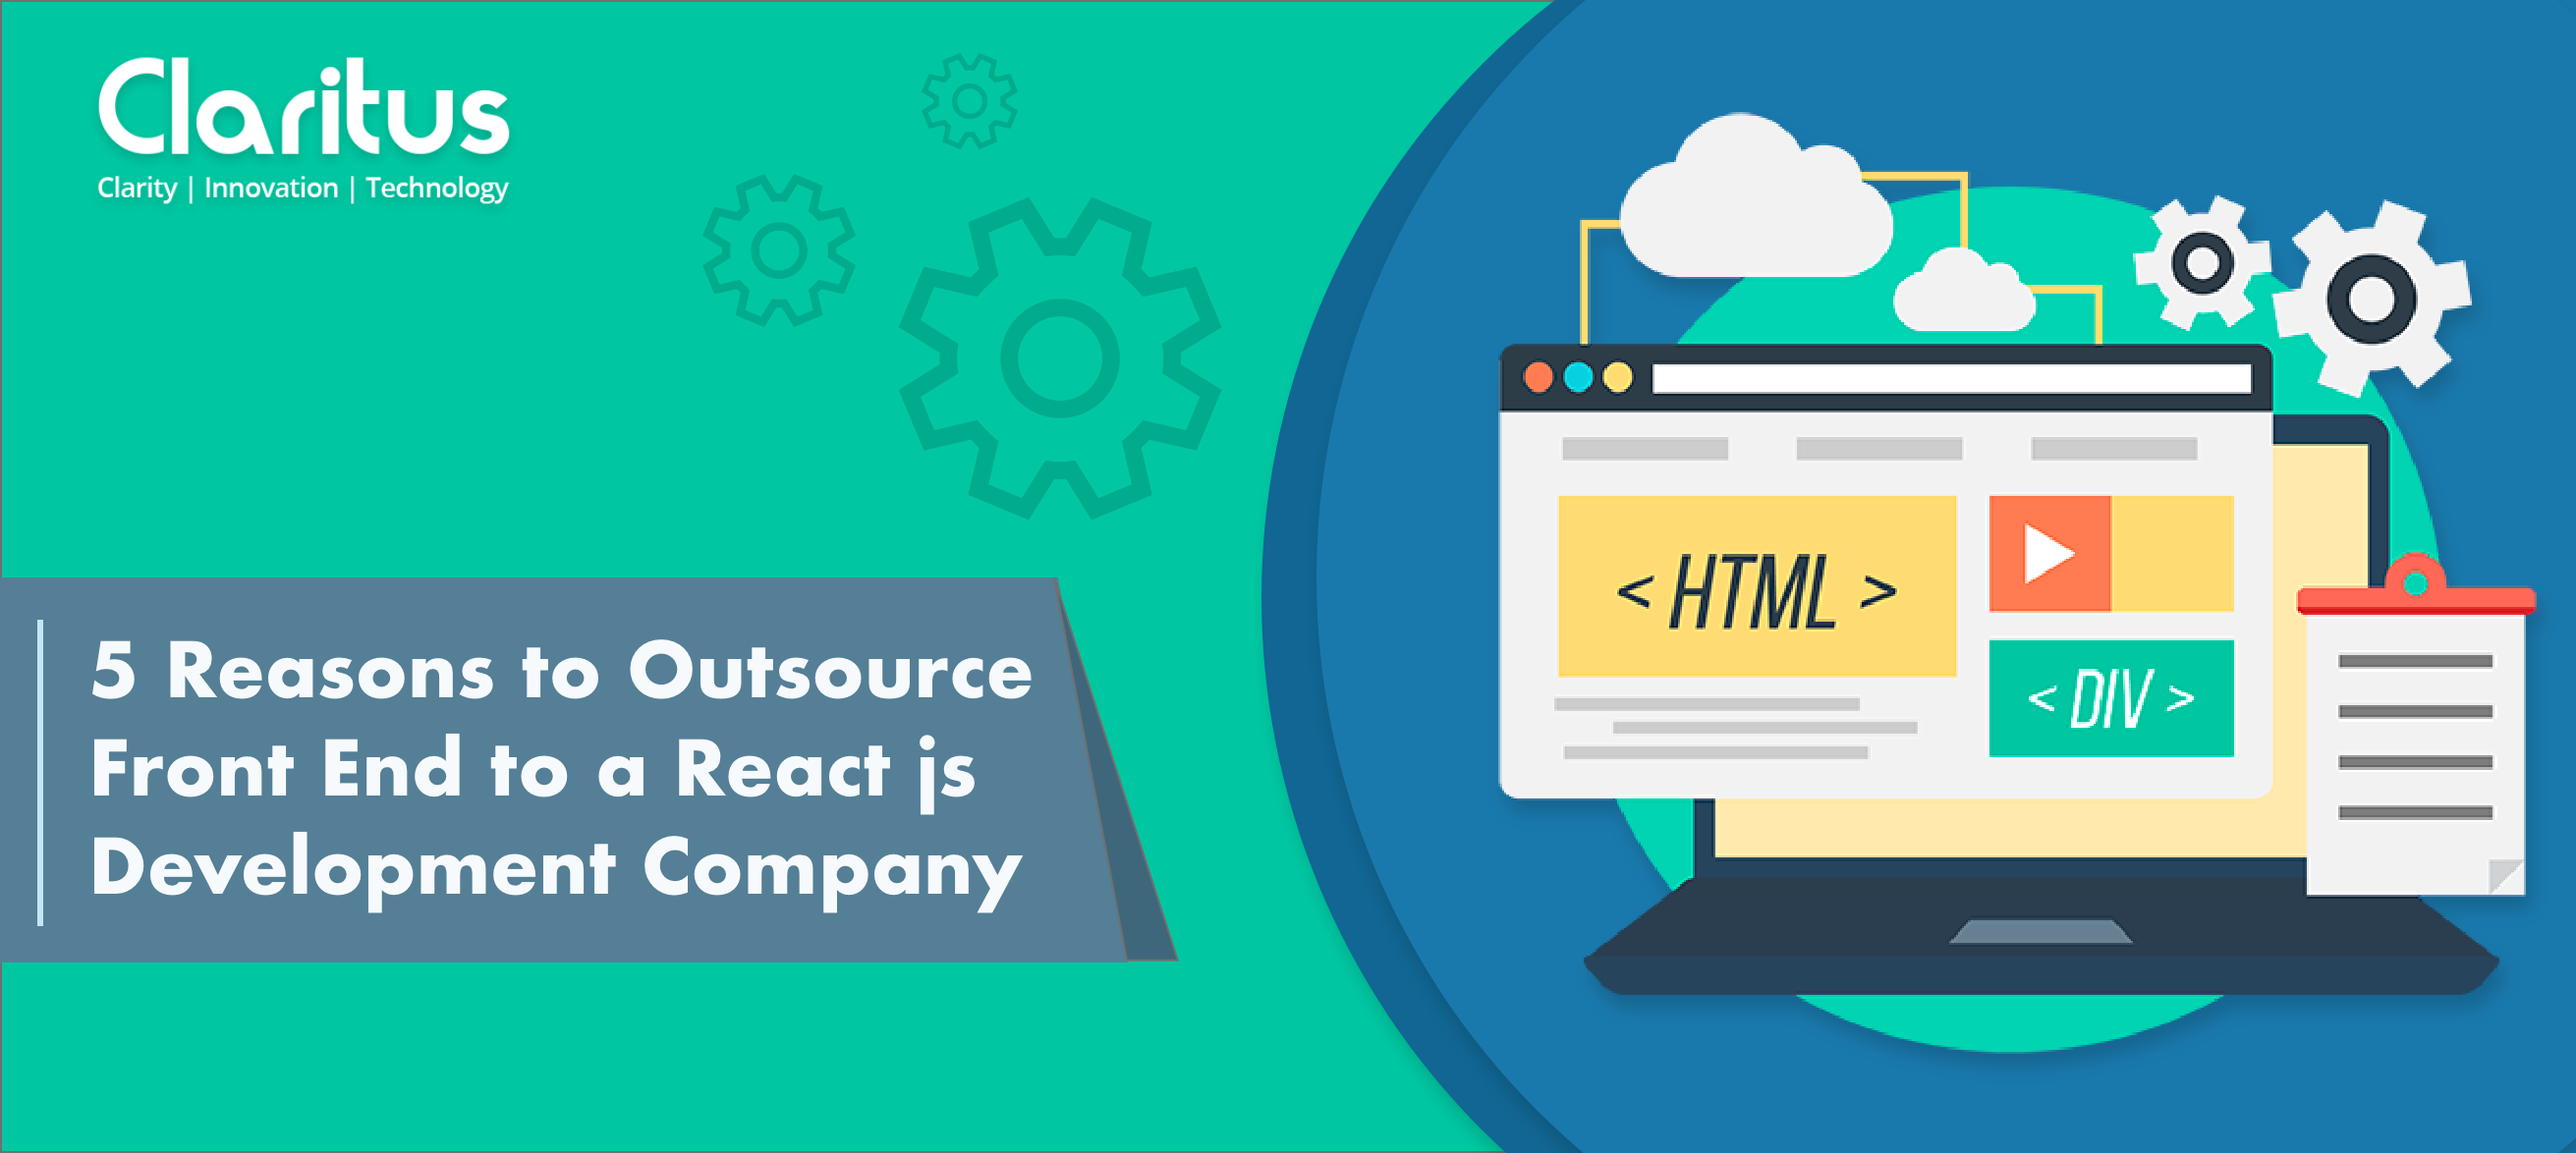 5 Reasons to Outsource your frontend to a ReactJS Development Company